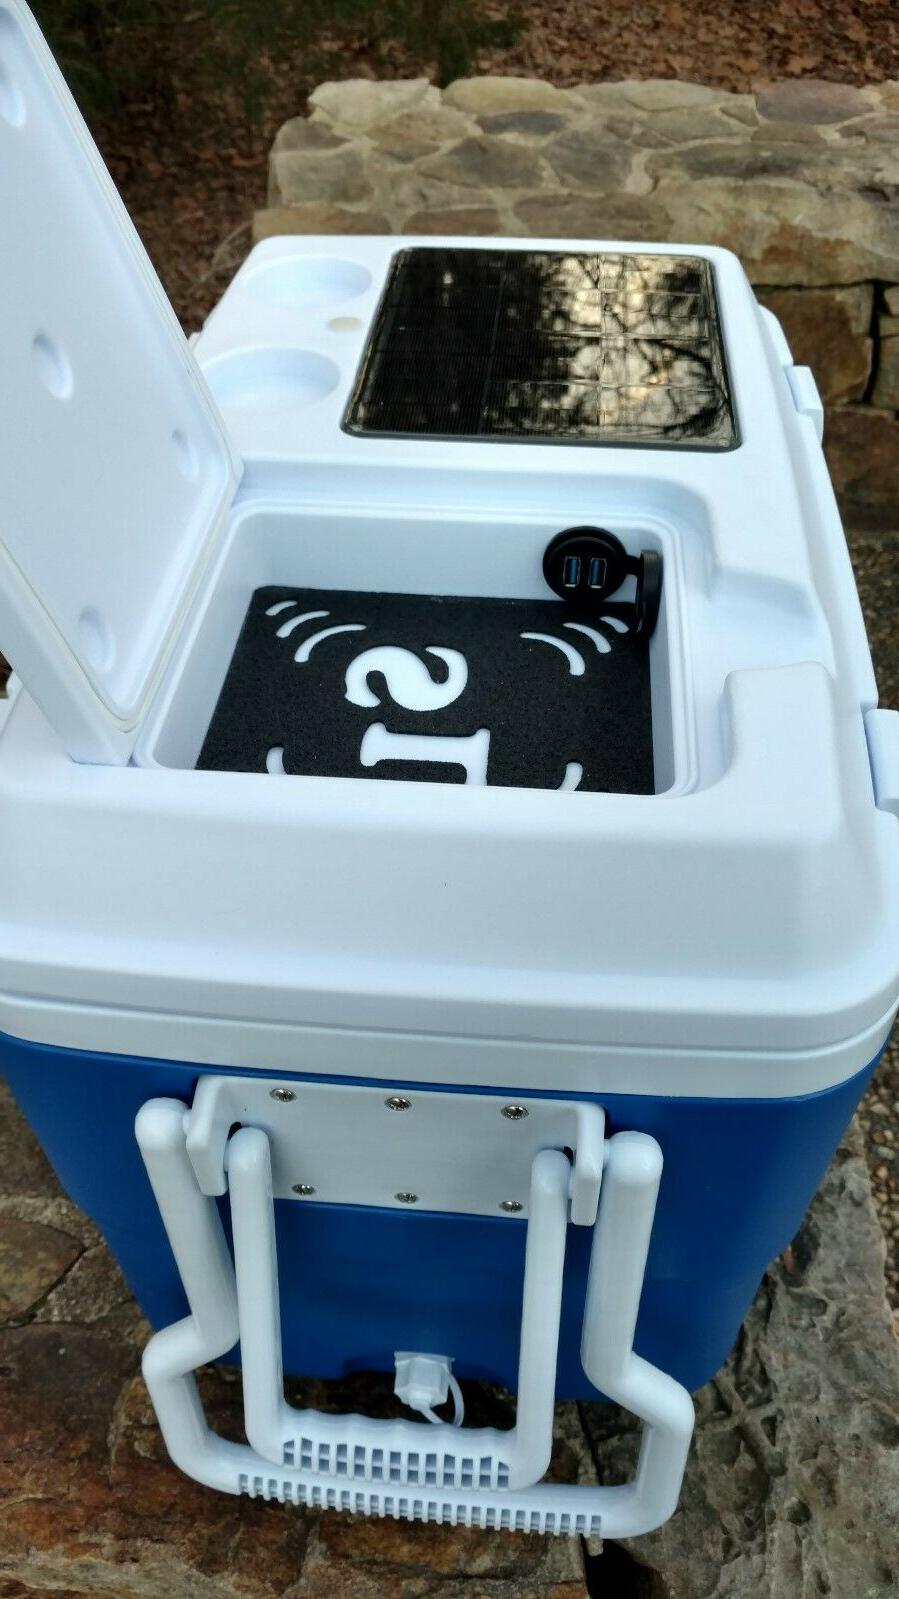 SOLAR LIFE Cooler, your devices Beach, relief